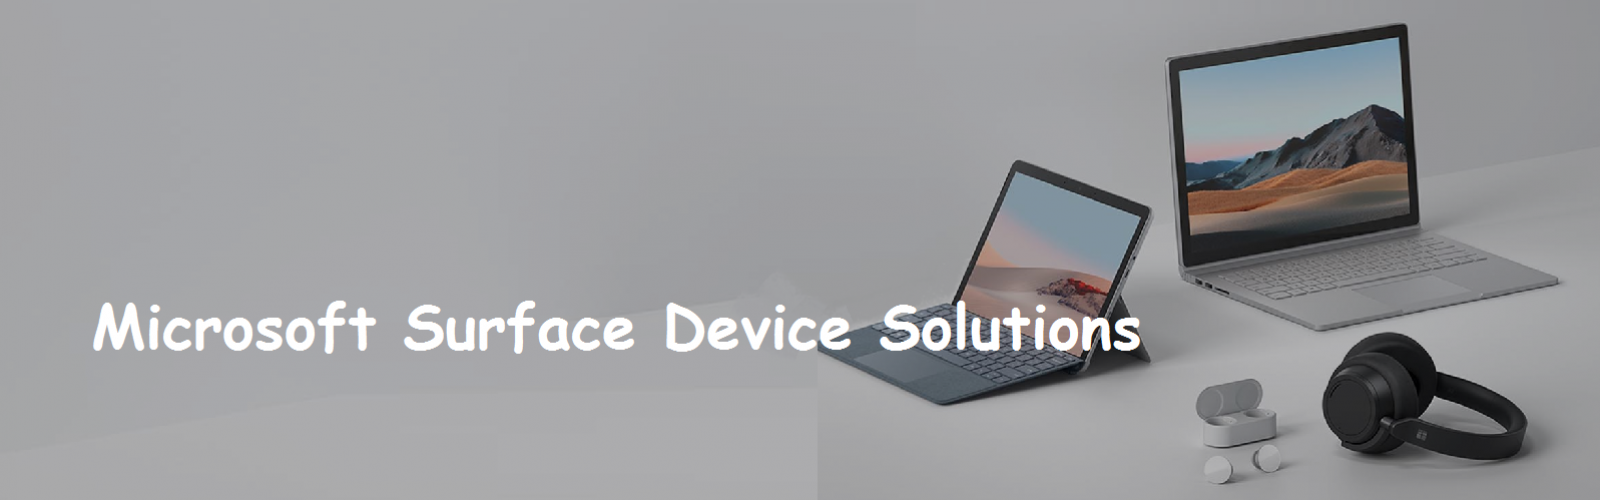 title.microsoft-surface-device-solutions.30.blak_